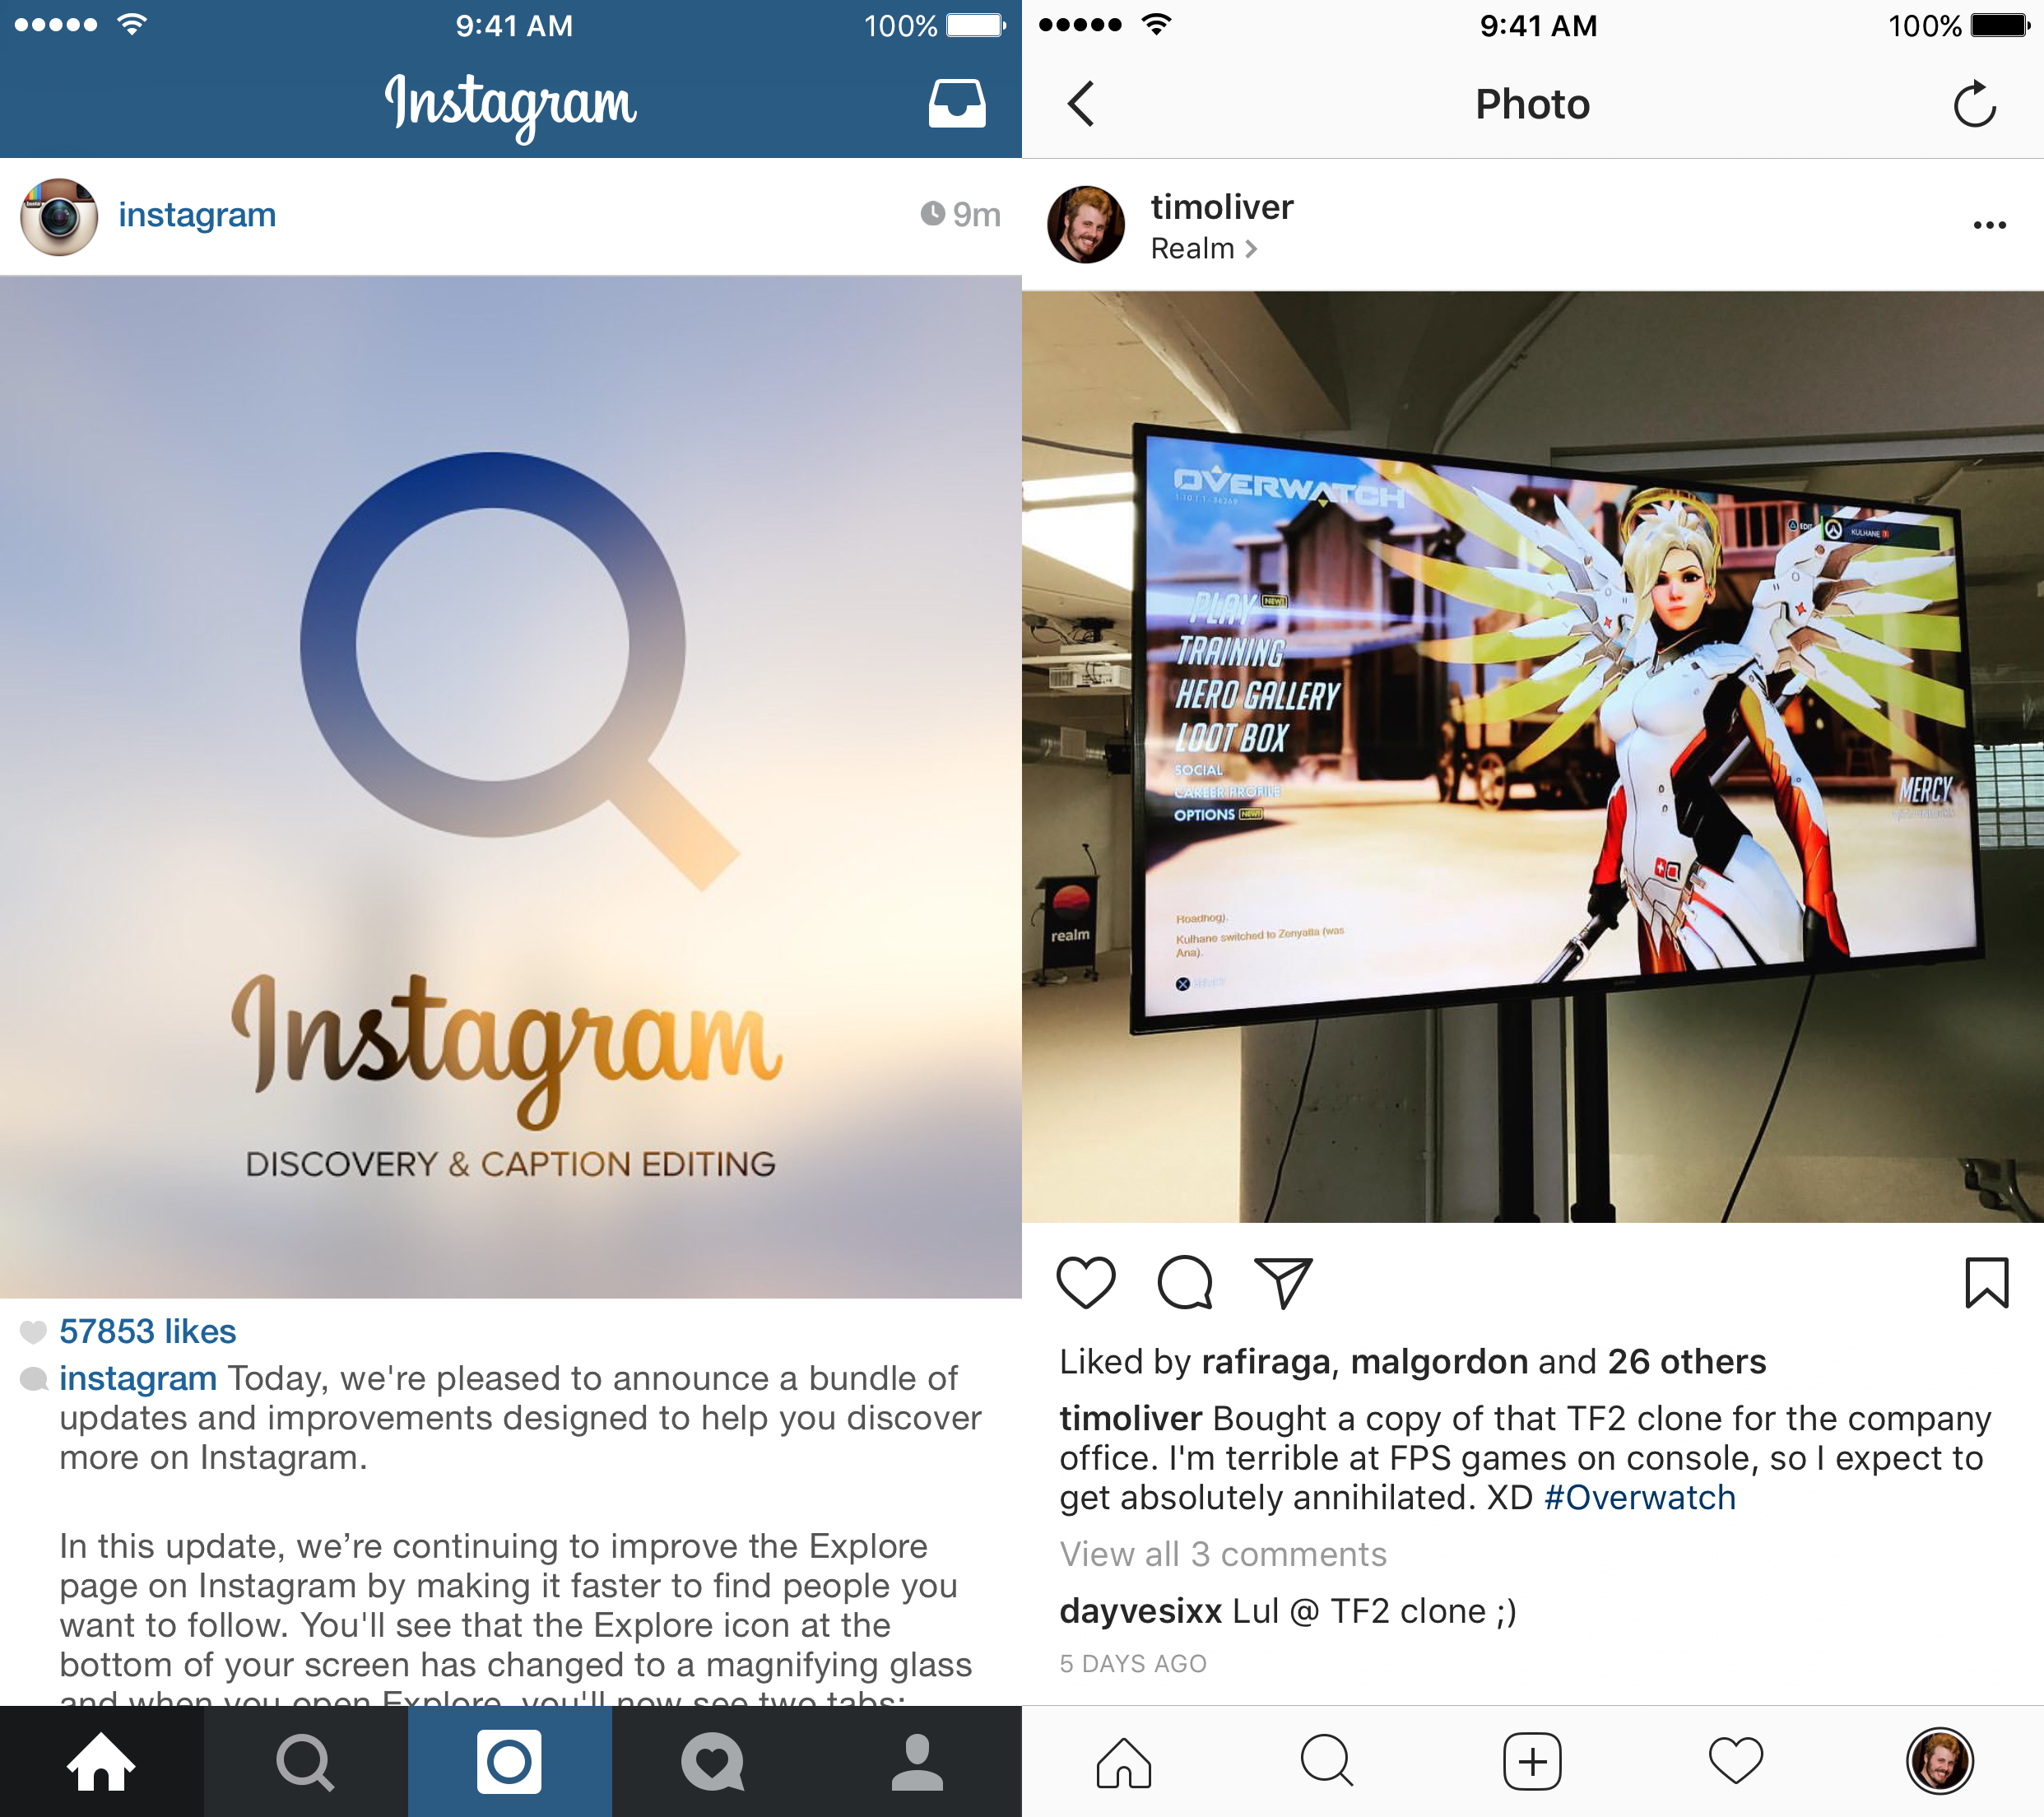 Instagram New Look in 2016